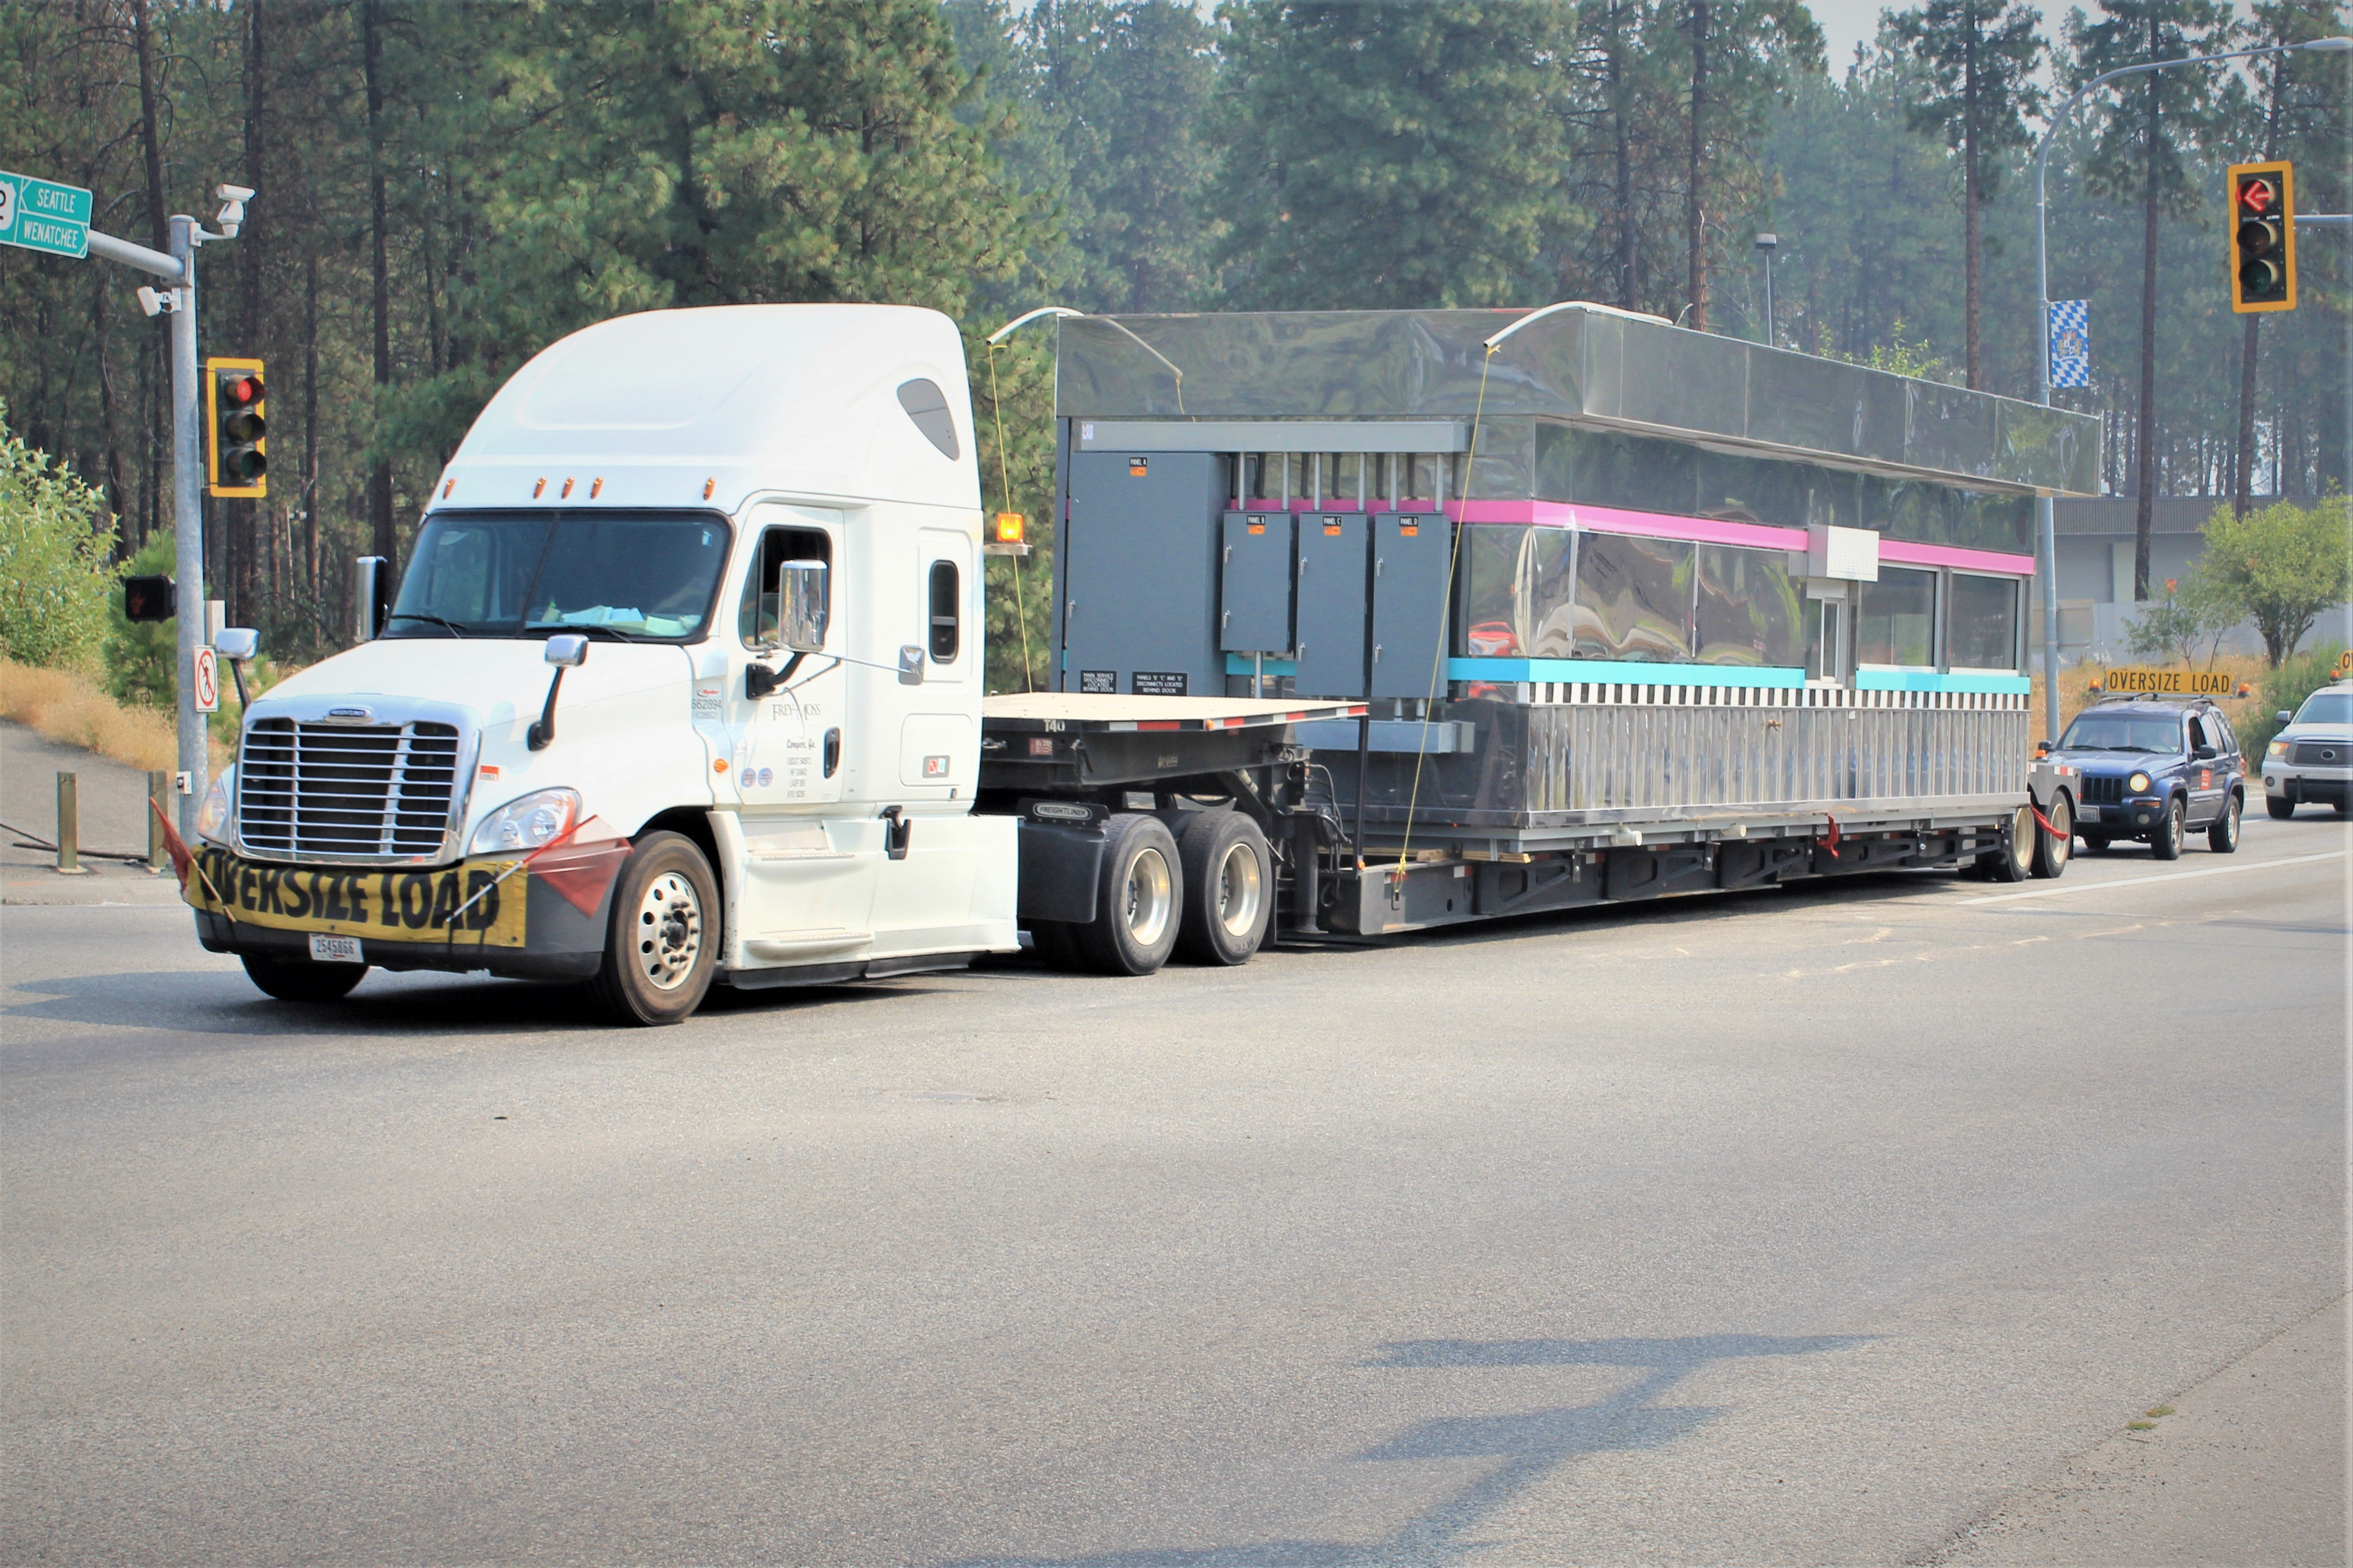 The new 59er Diner trucks through Leavenworth on its way home